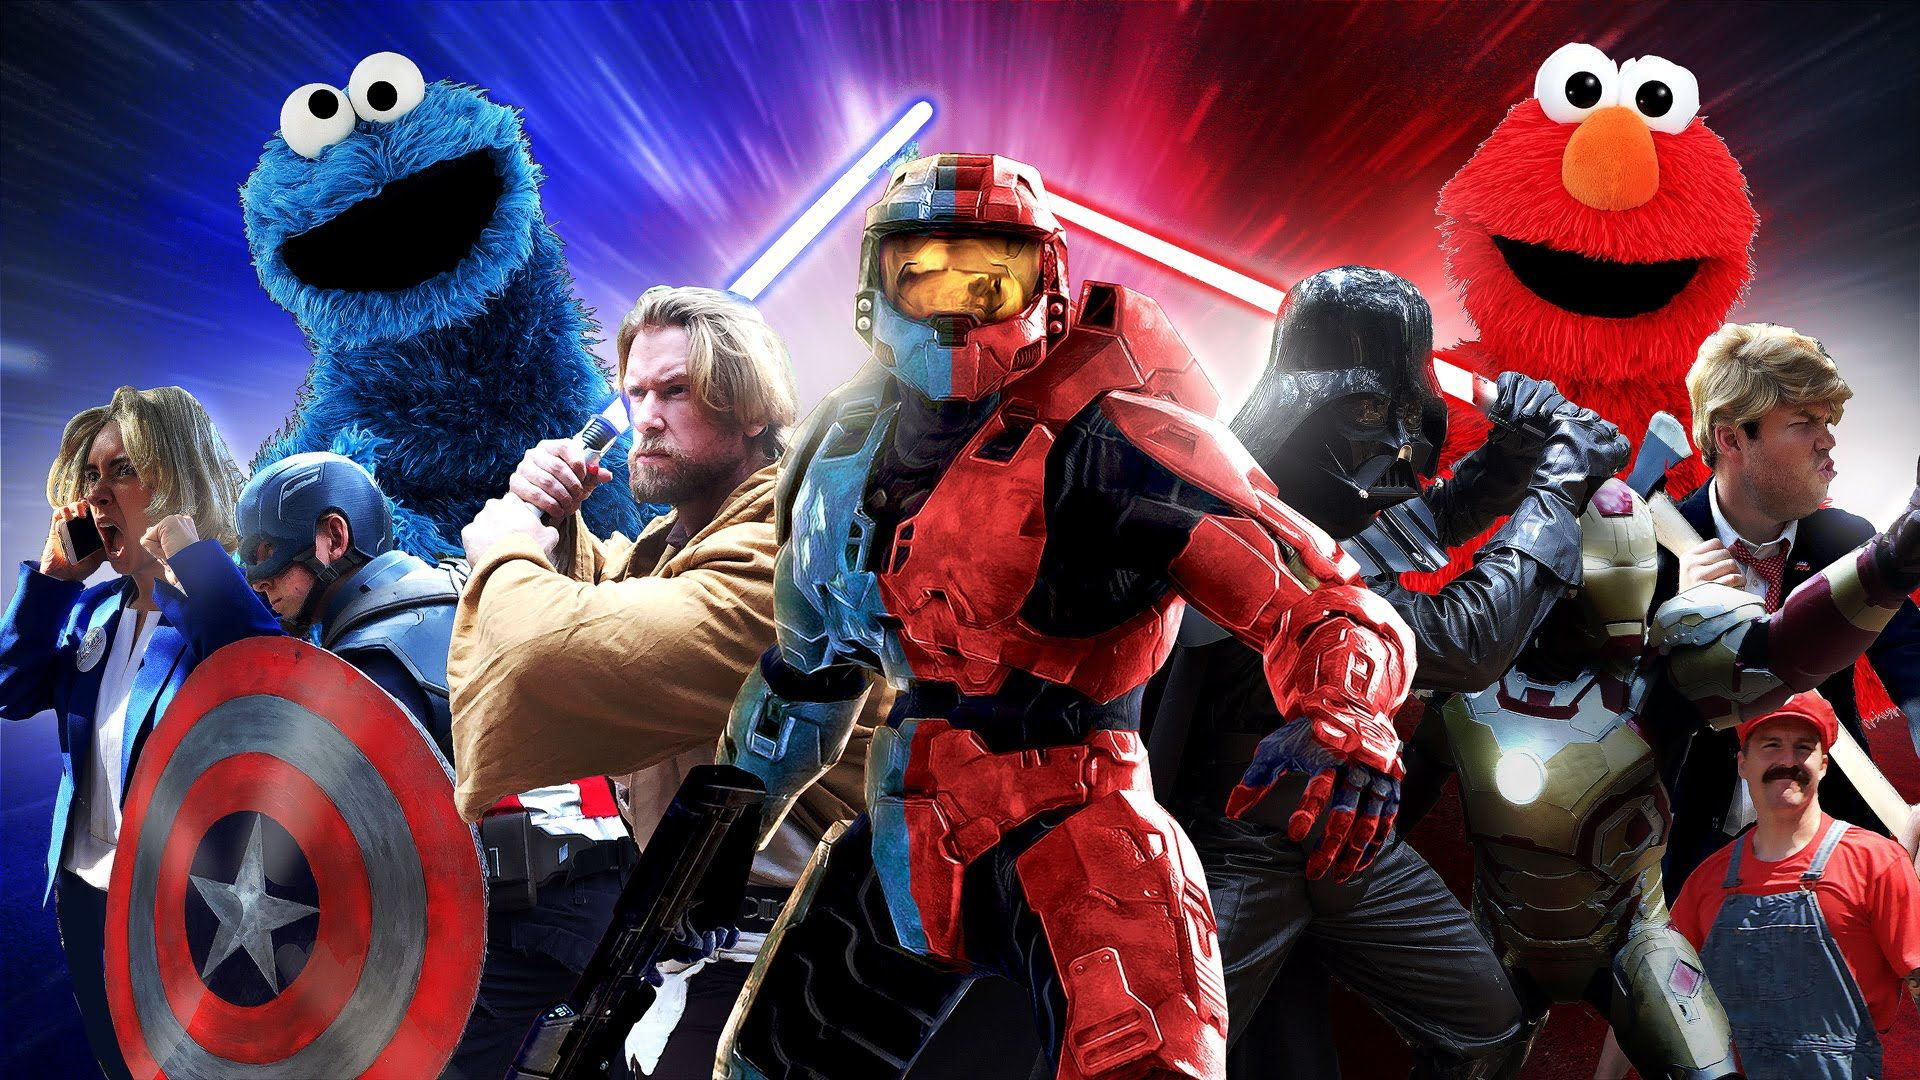 a live action battle between red and blue pop culture rivals